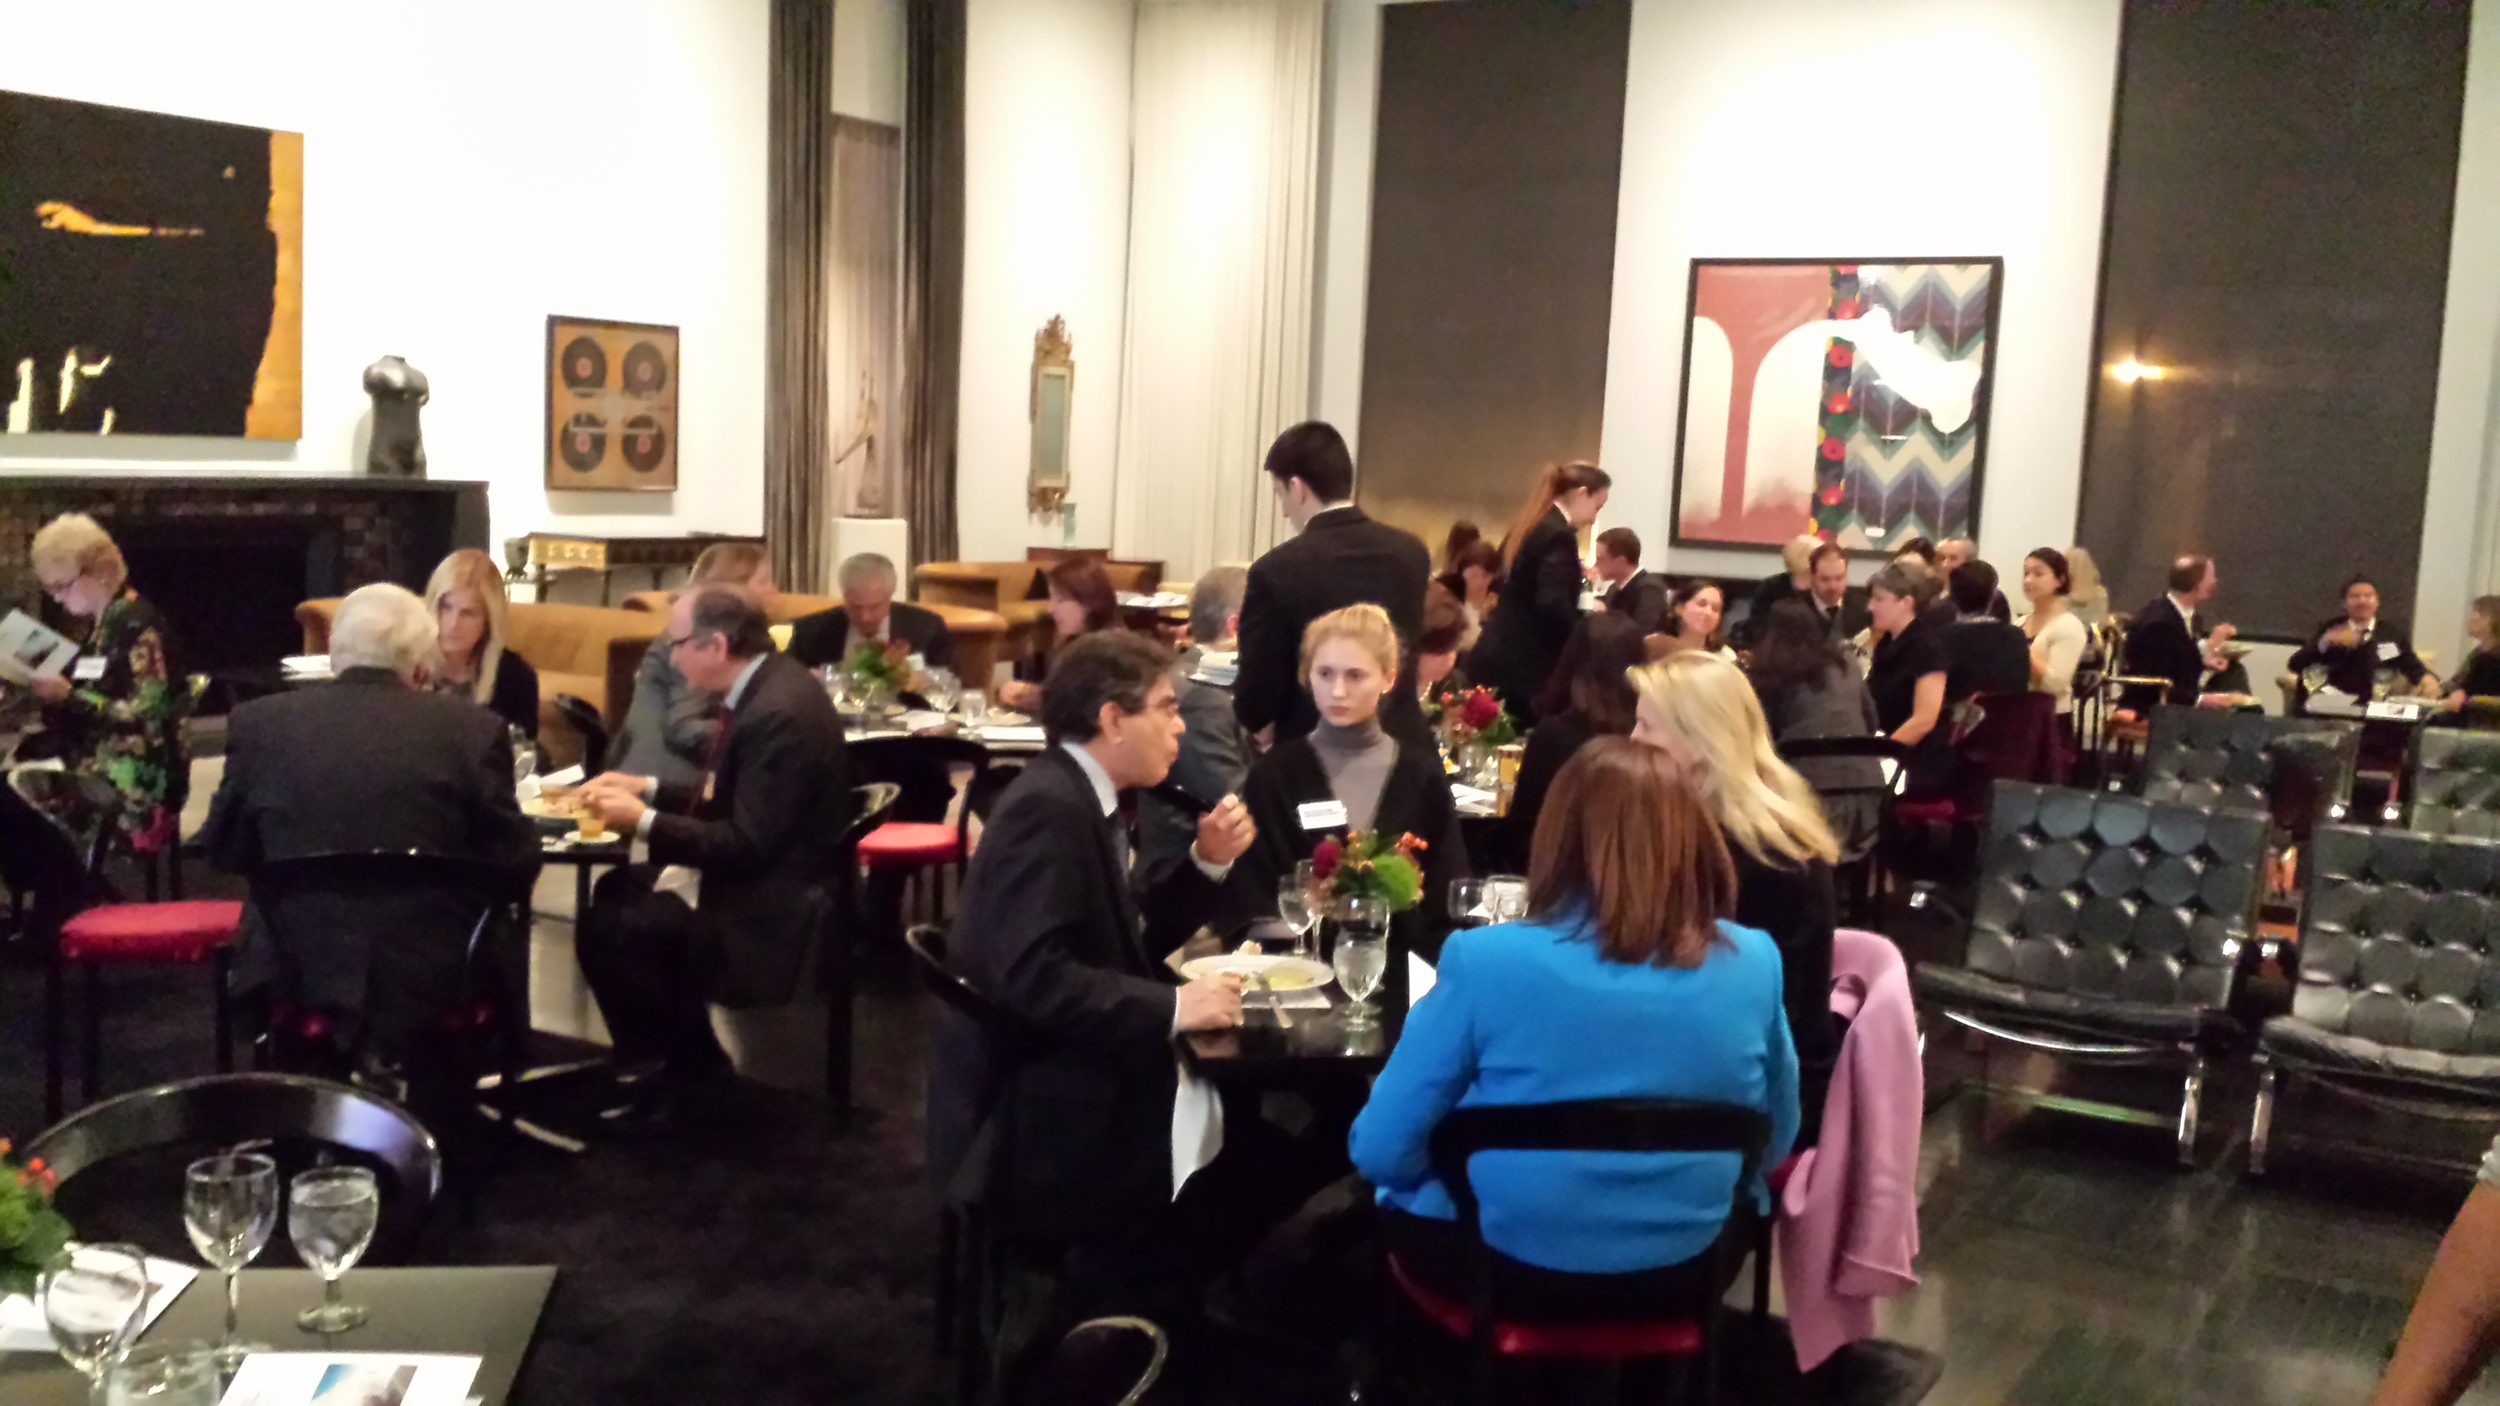 The Arts Club of Chicago provided a stunning atmosphere for the evening.